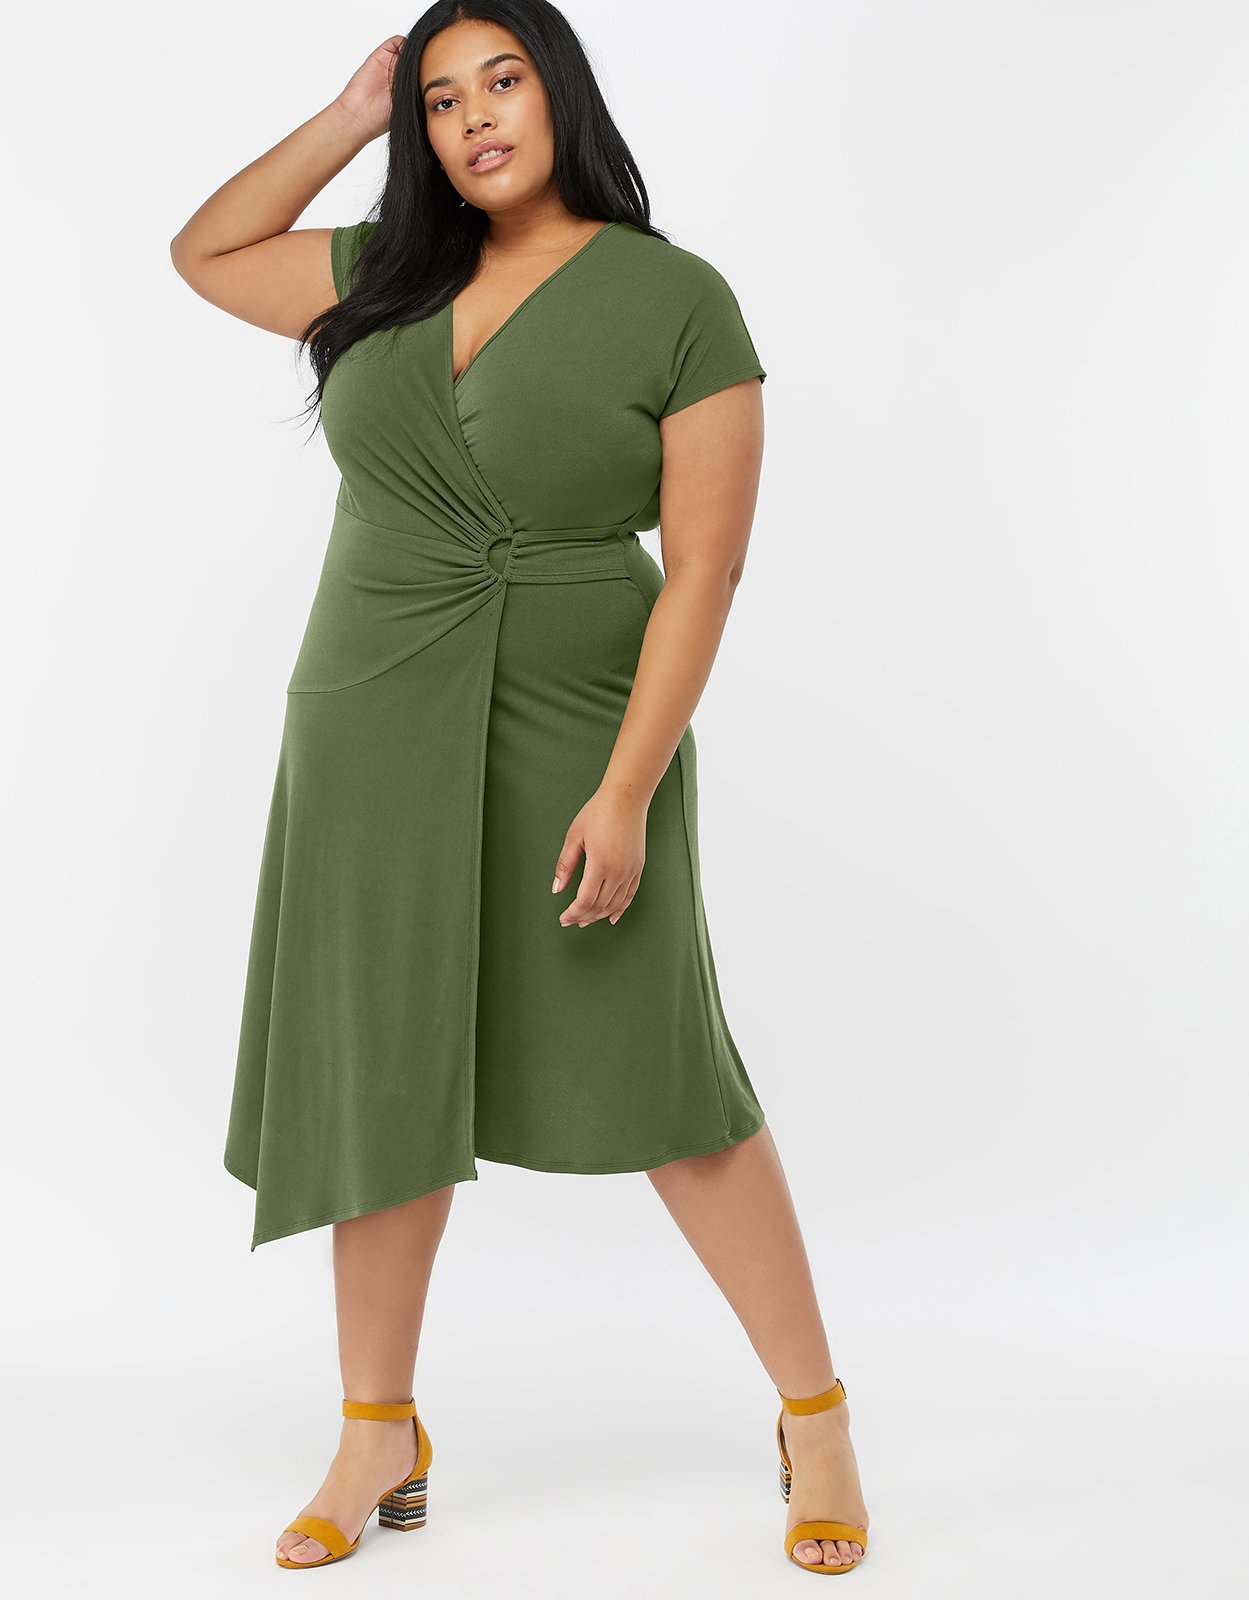 Dance The Night Away In These 4 Plus Size Wedding Guest Dresses